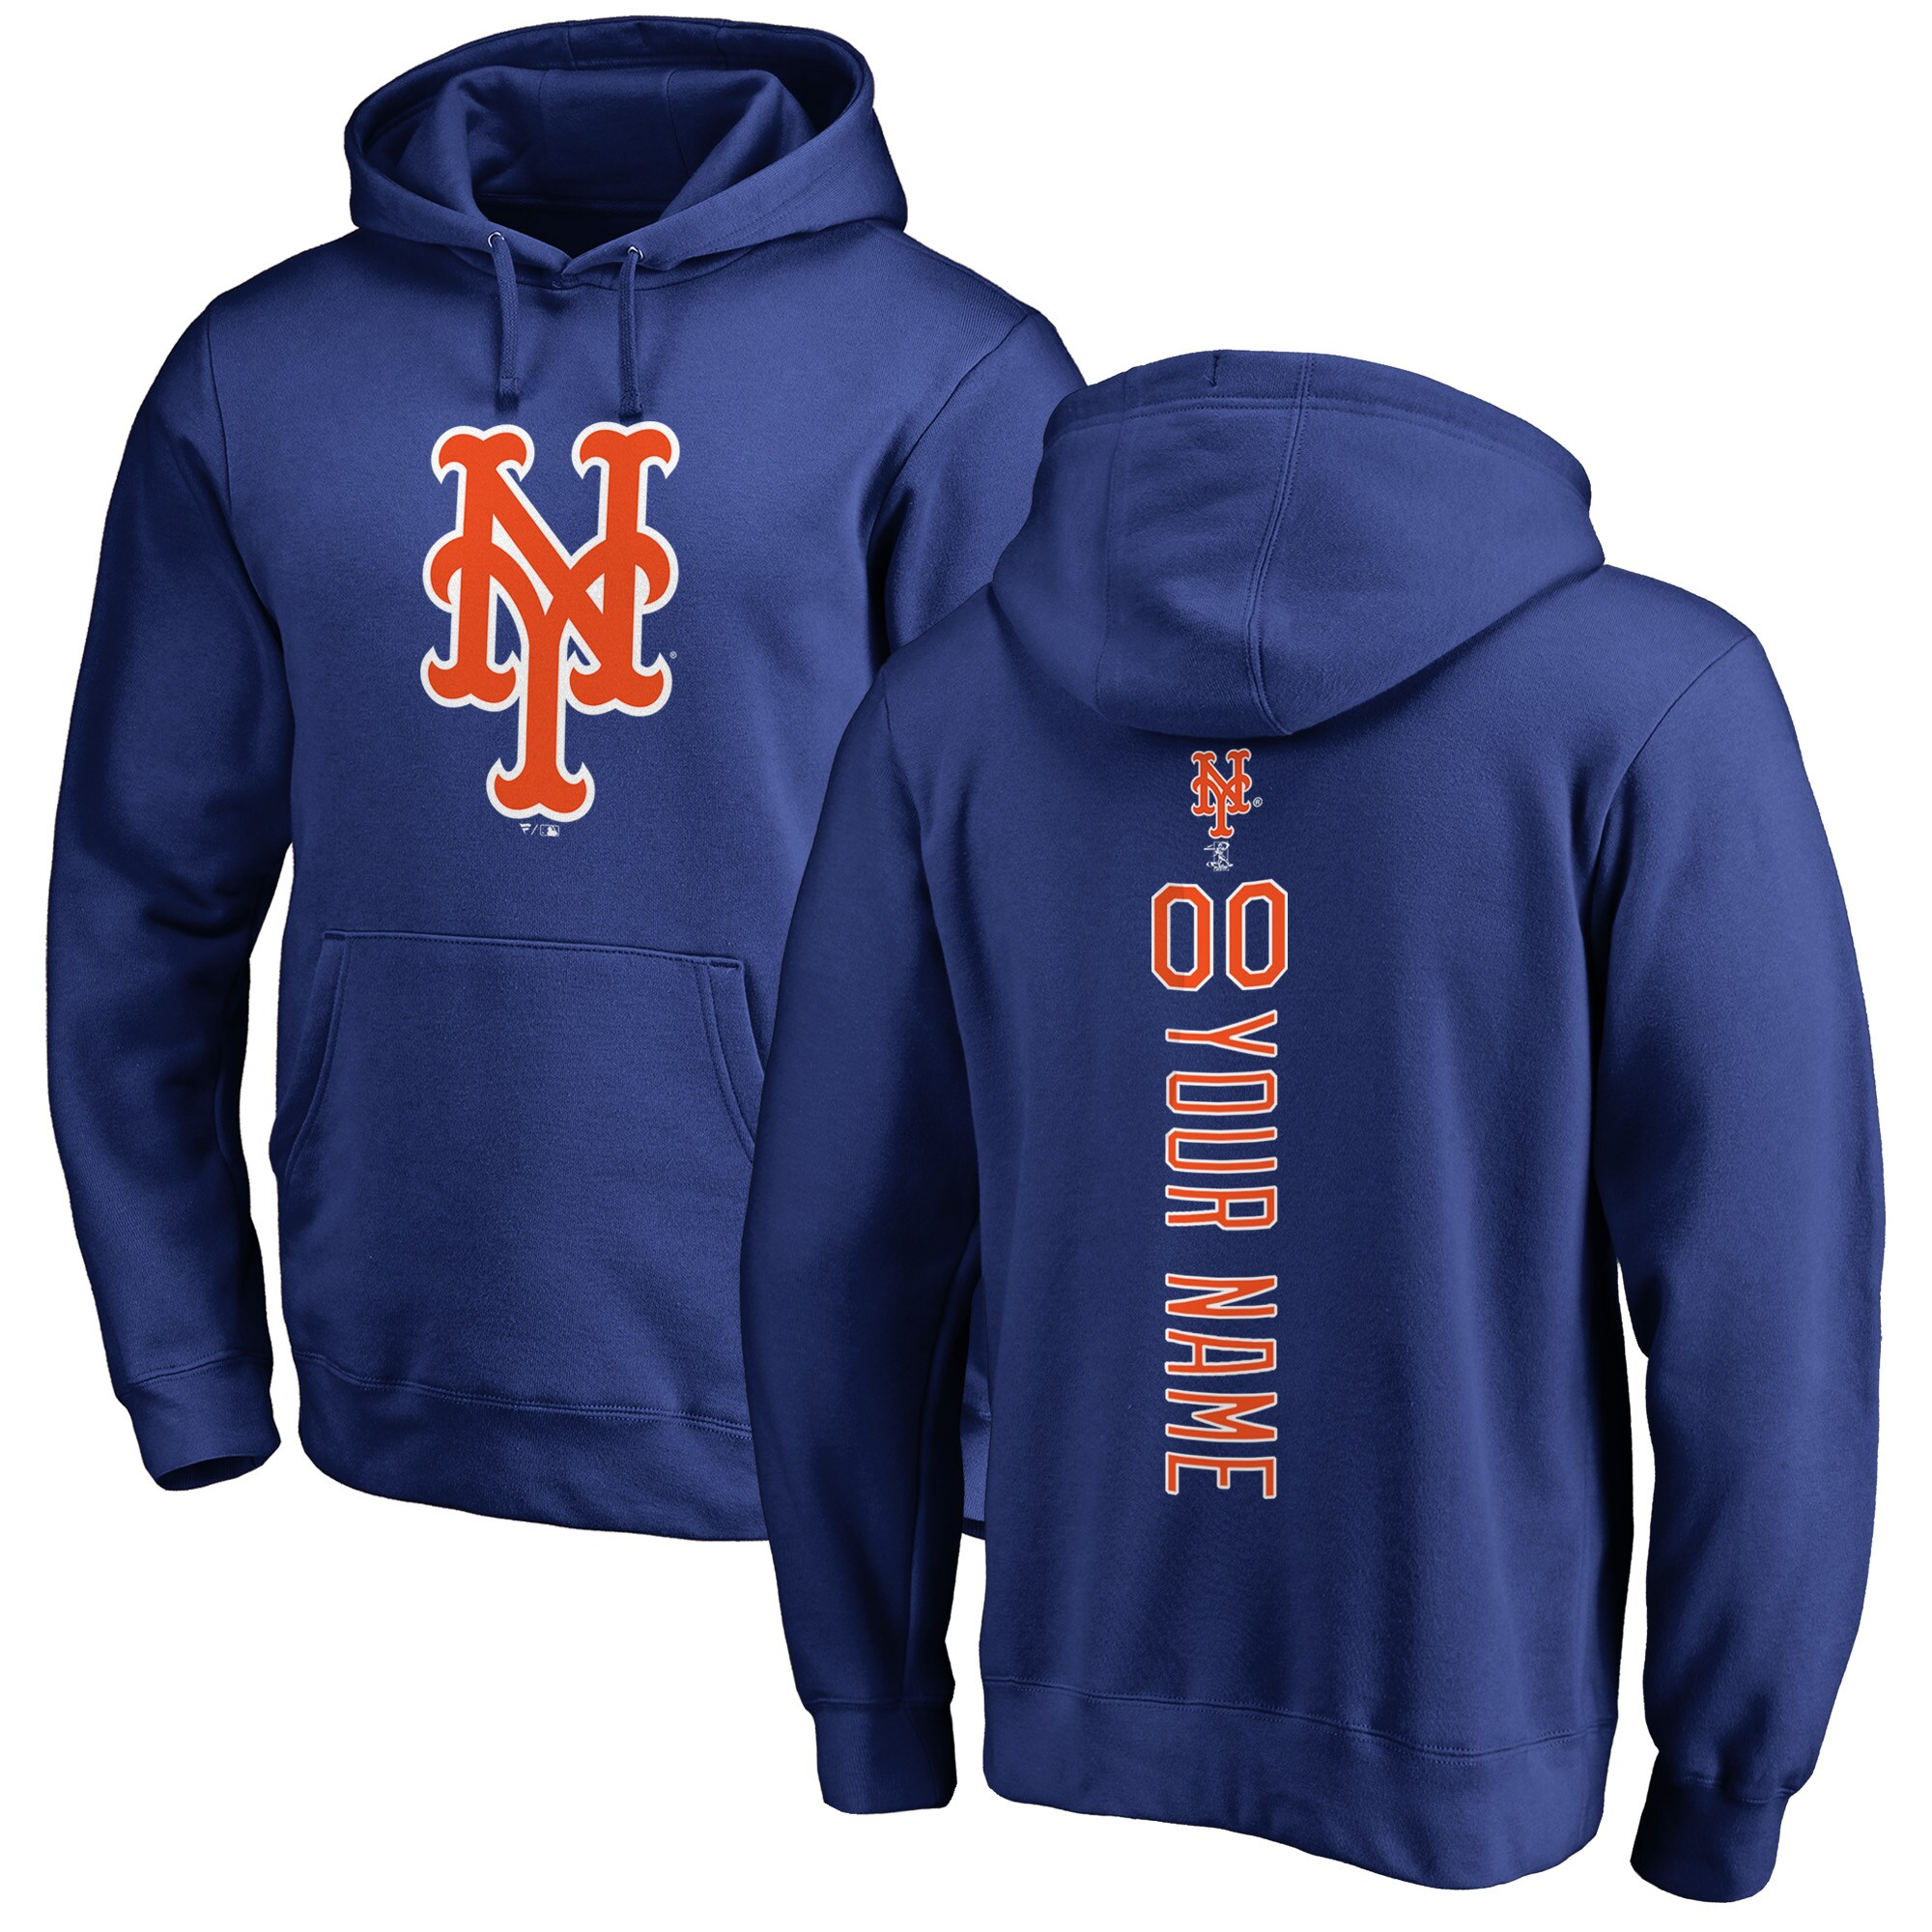 New York Mets Fanatics Branded Personalized Playmaker Pullover Hoodie - Royal